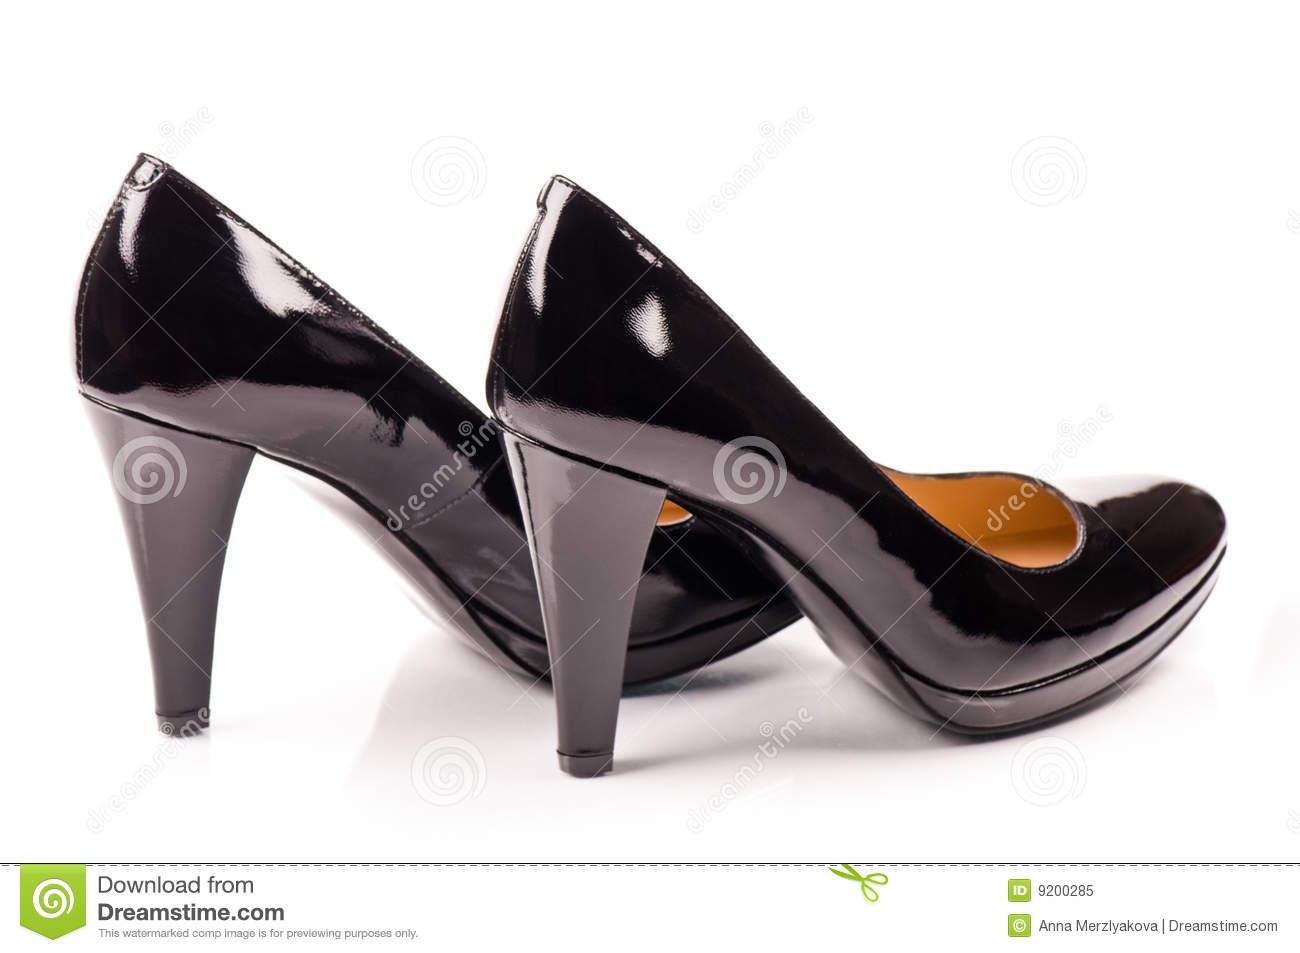 black women s patent leather shoes isolated on white